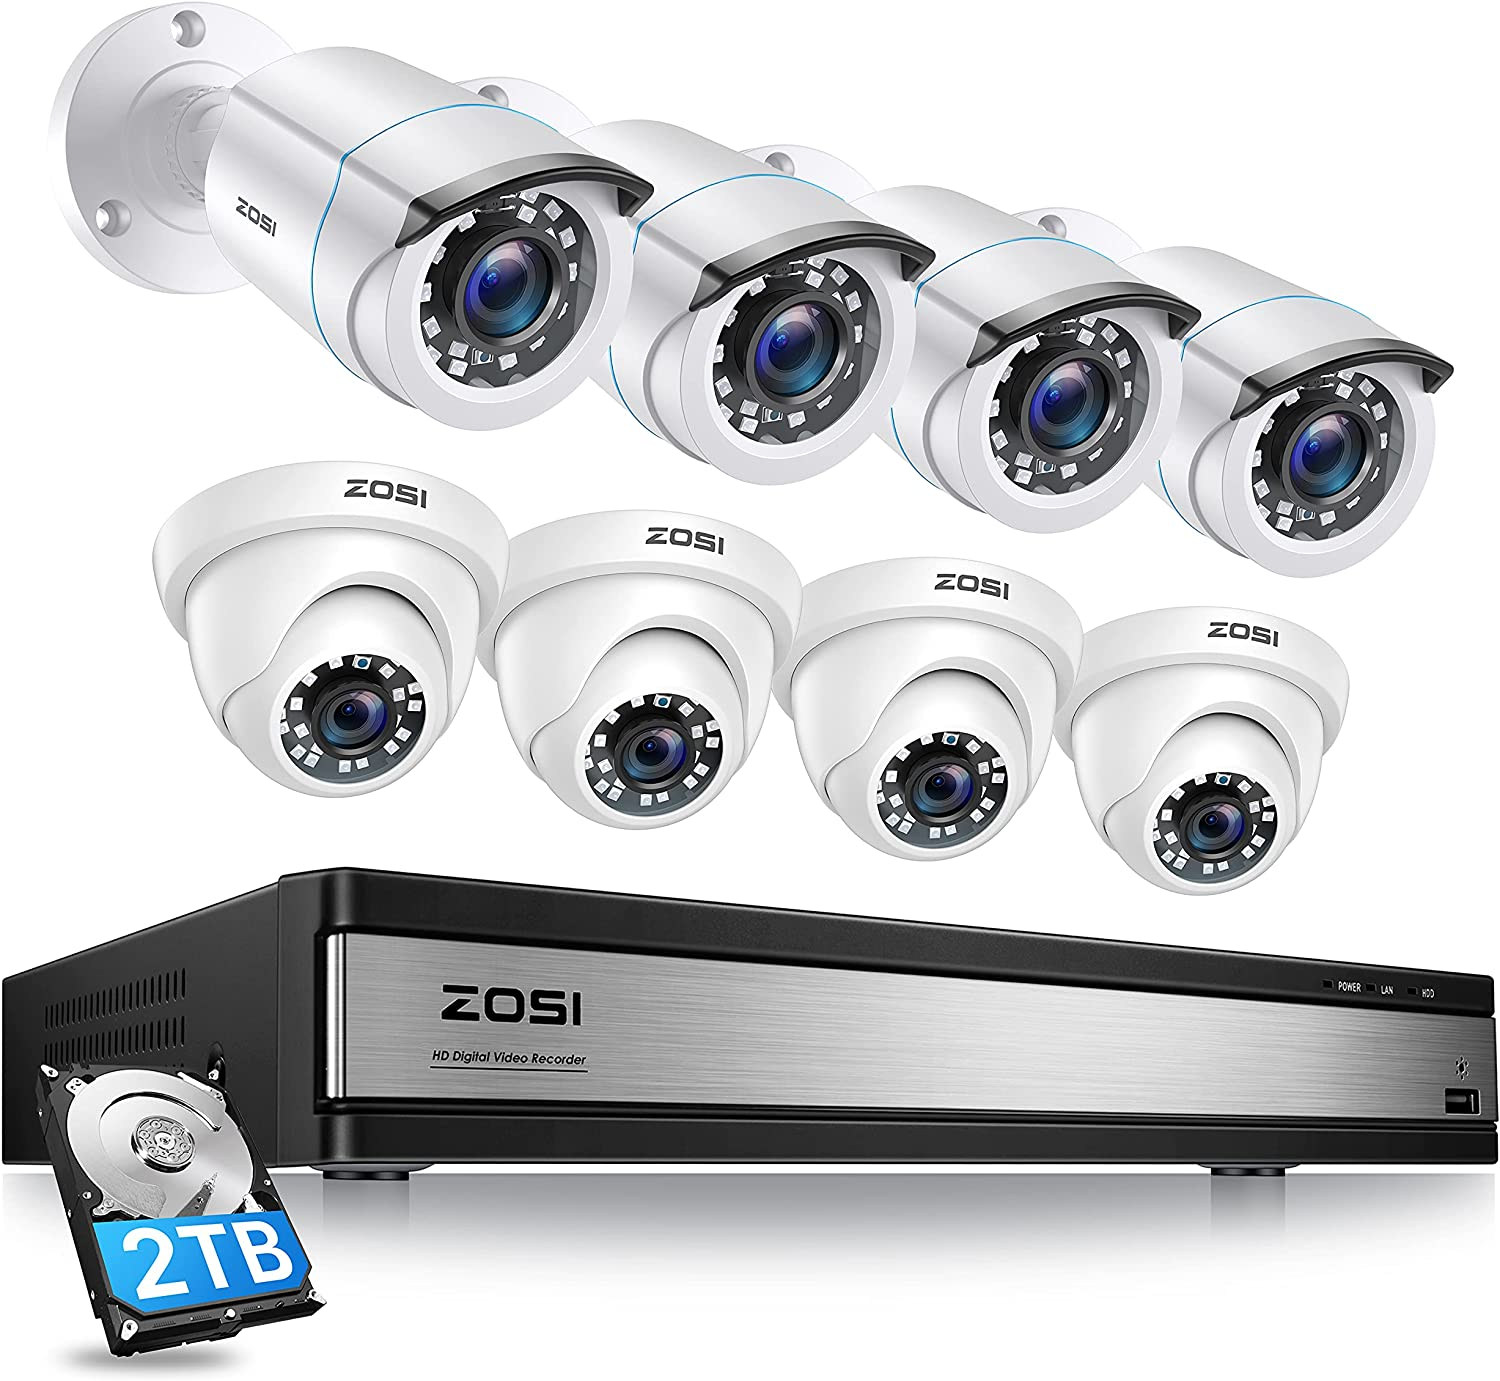 ZOSI Full 1080p 16 Channel Home Outlet ☆ Free Shipping System 1 H.265+ Camera Limited price Security